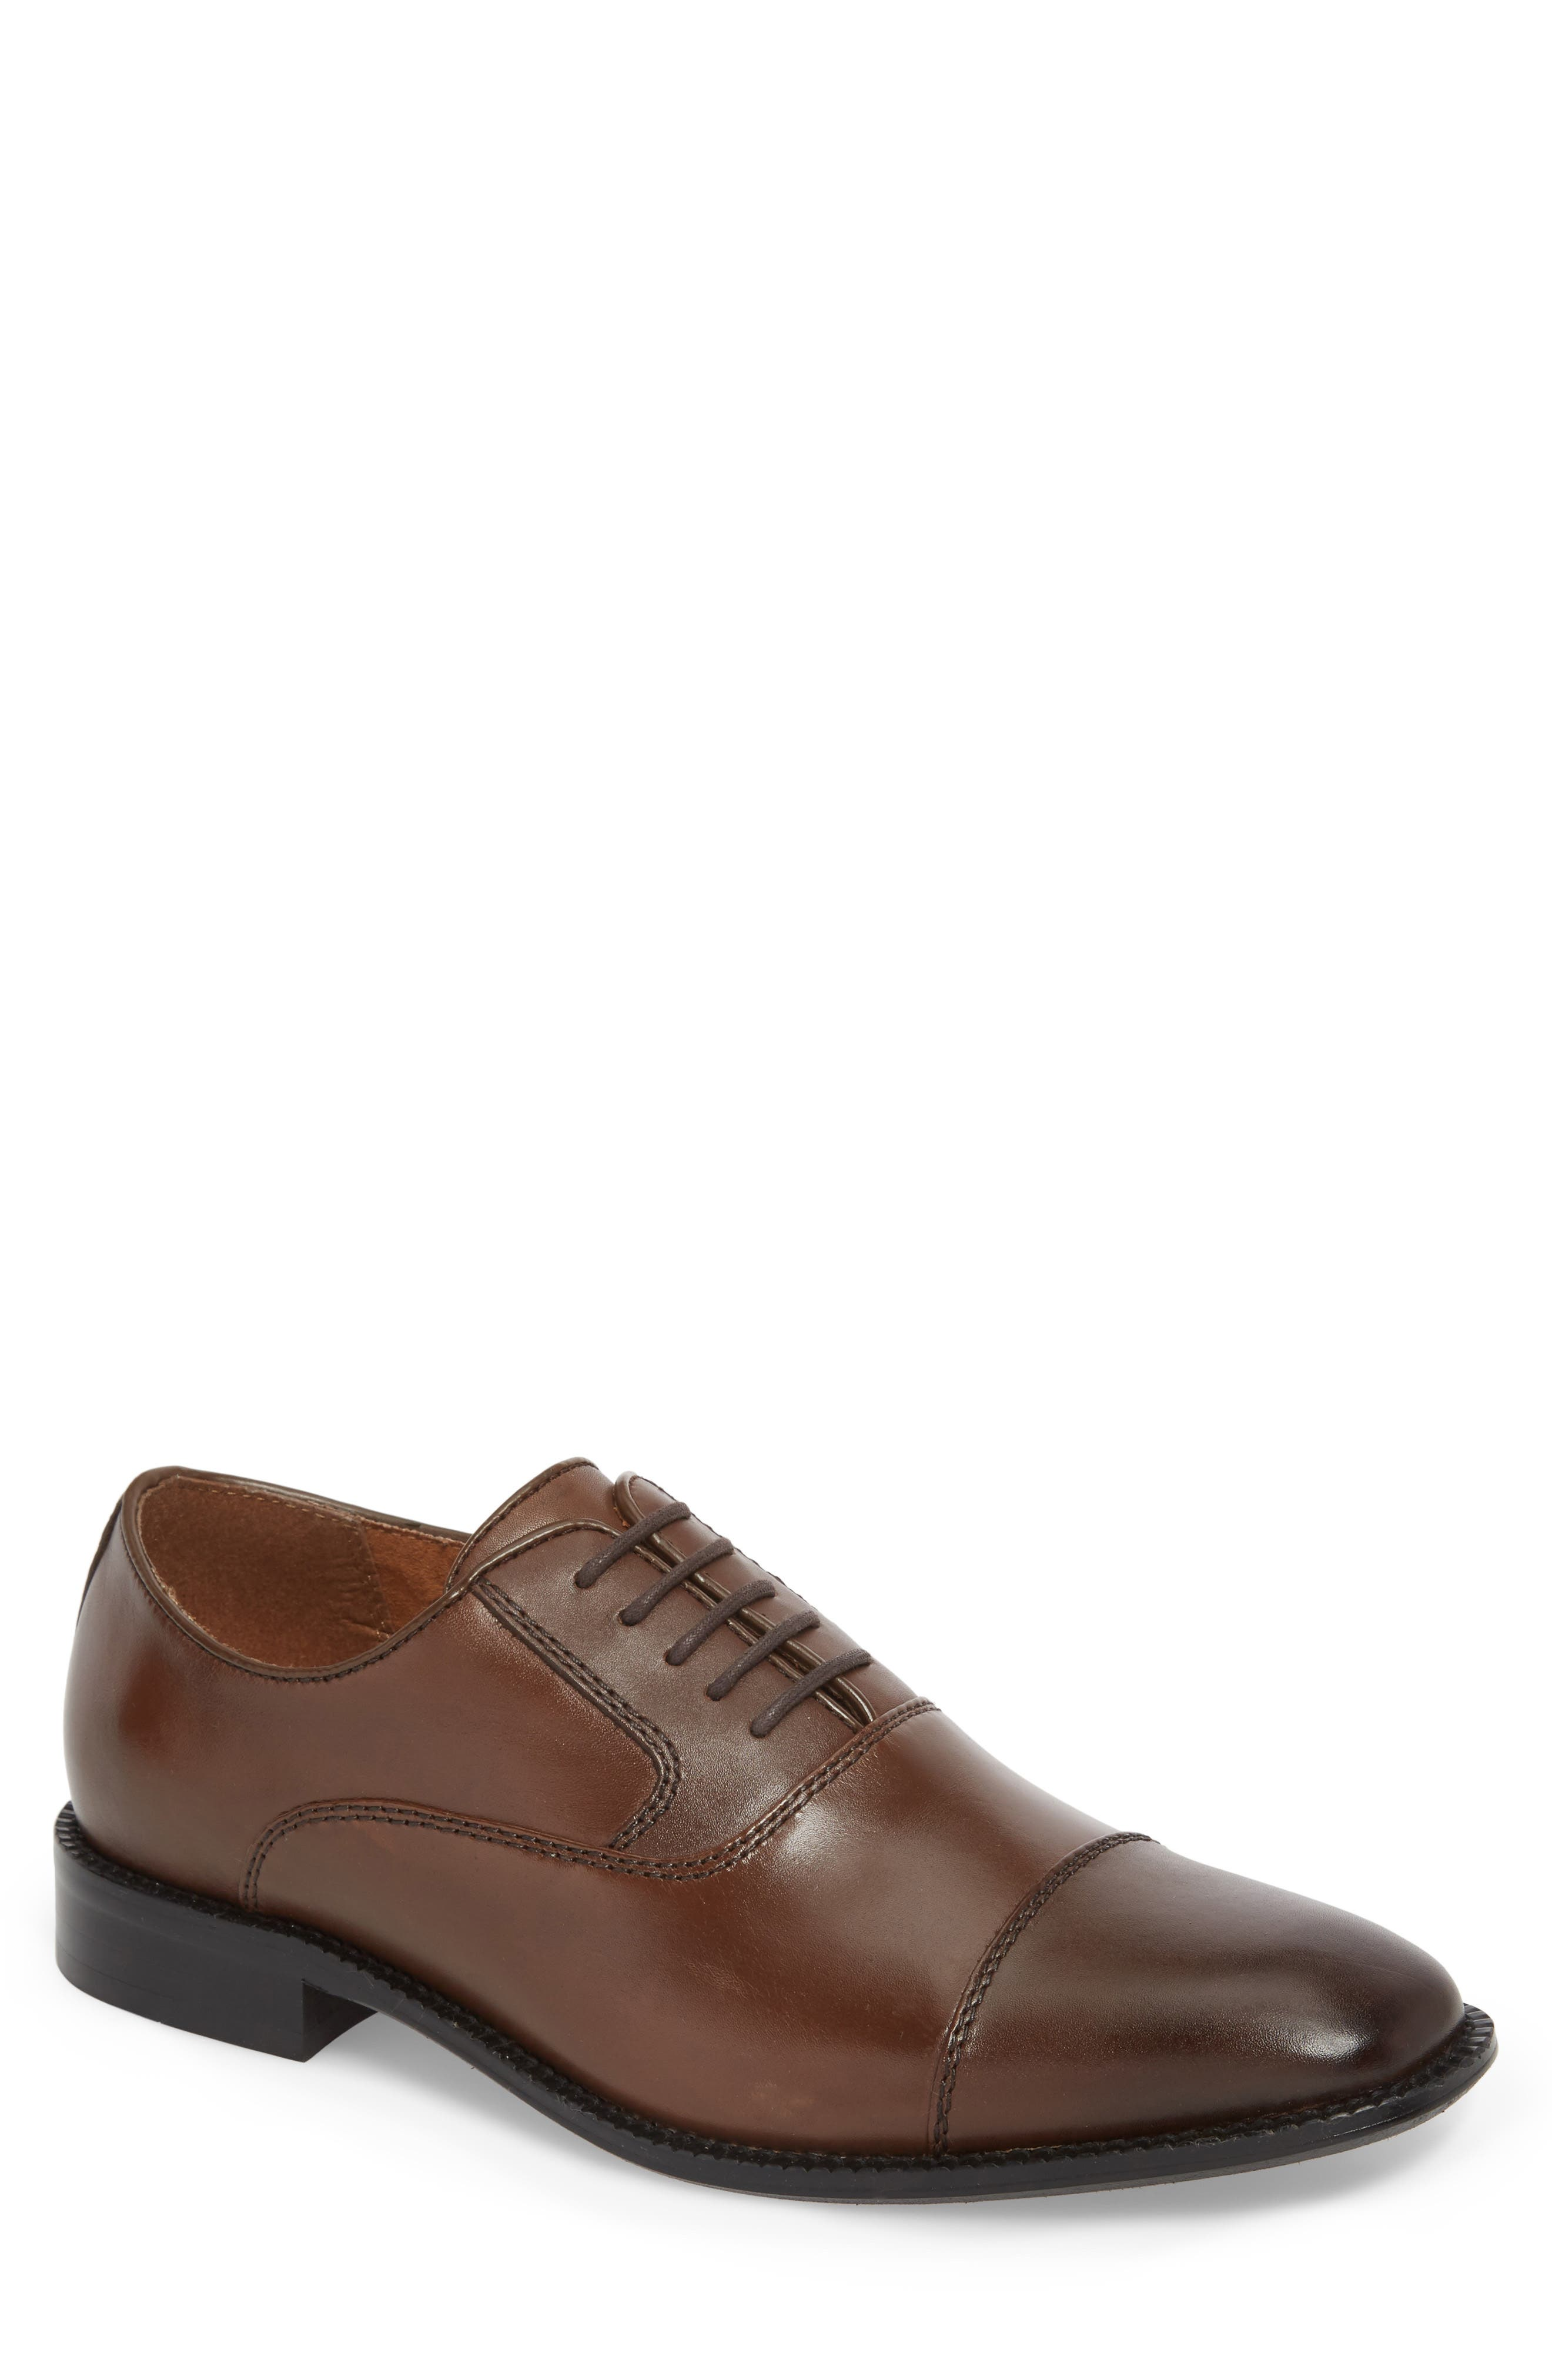 Dice Cap Toe Oxford,                             Main thumbnail 1, color,                             Brown Leather